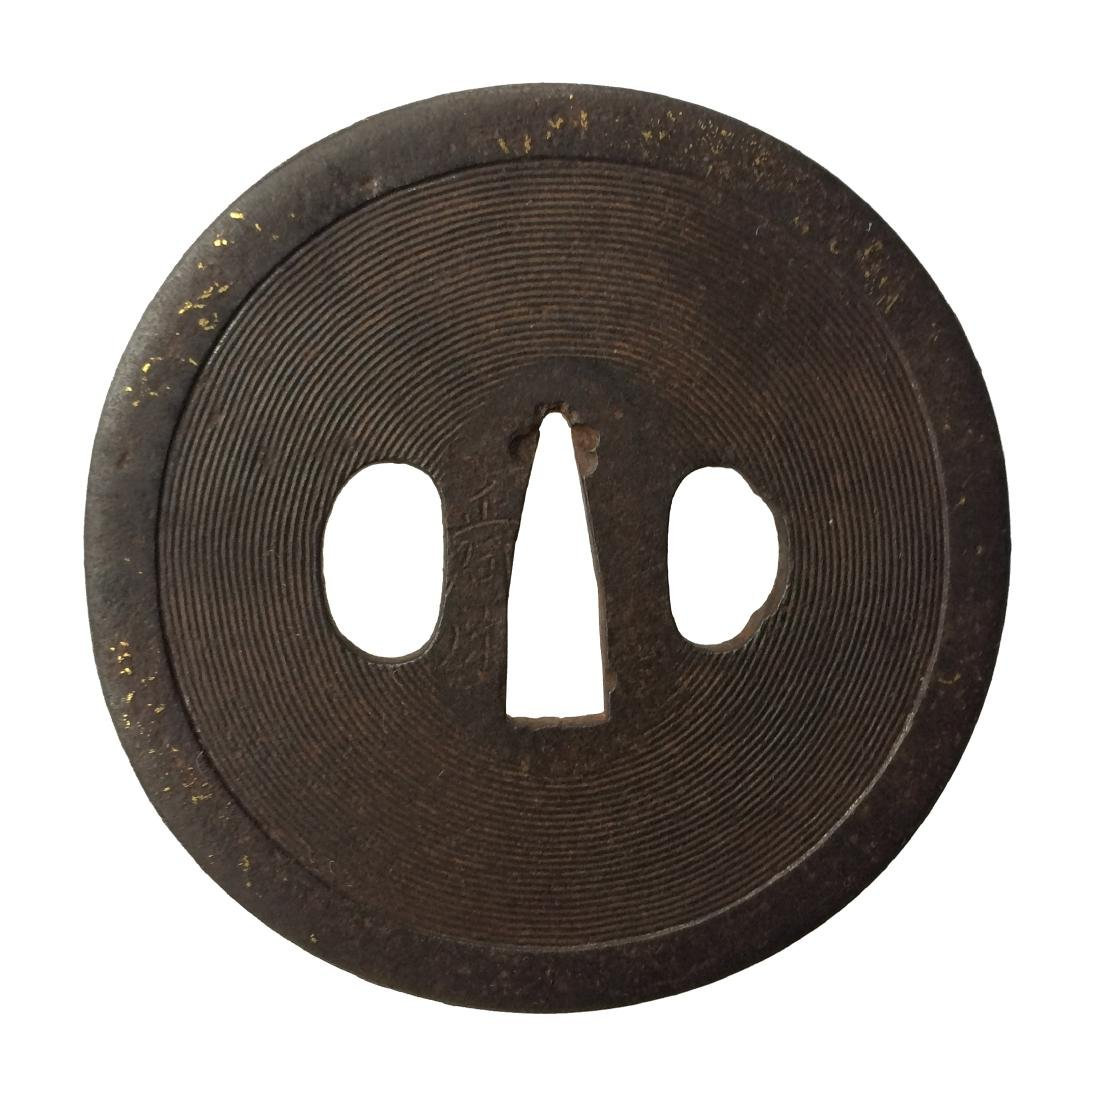 Signed iron tsuba carved with concentric circles